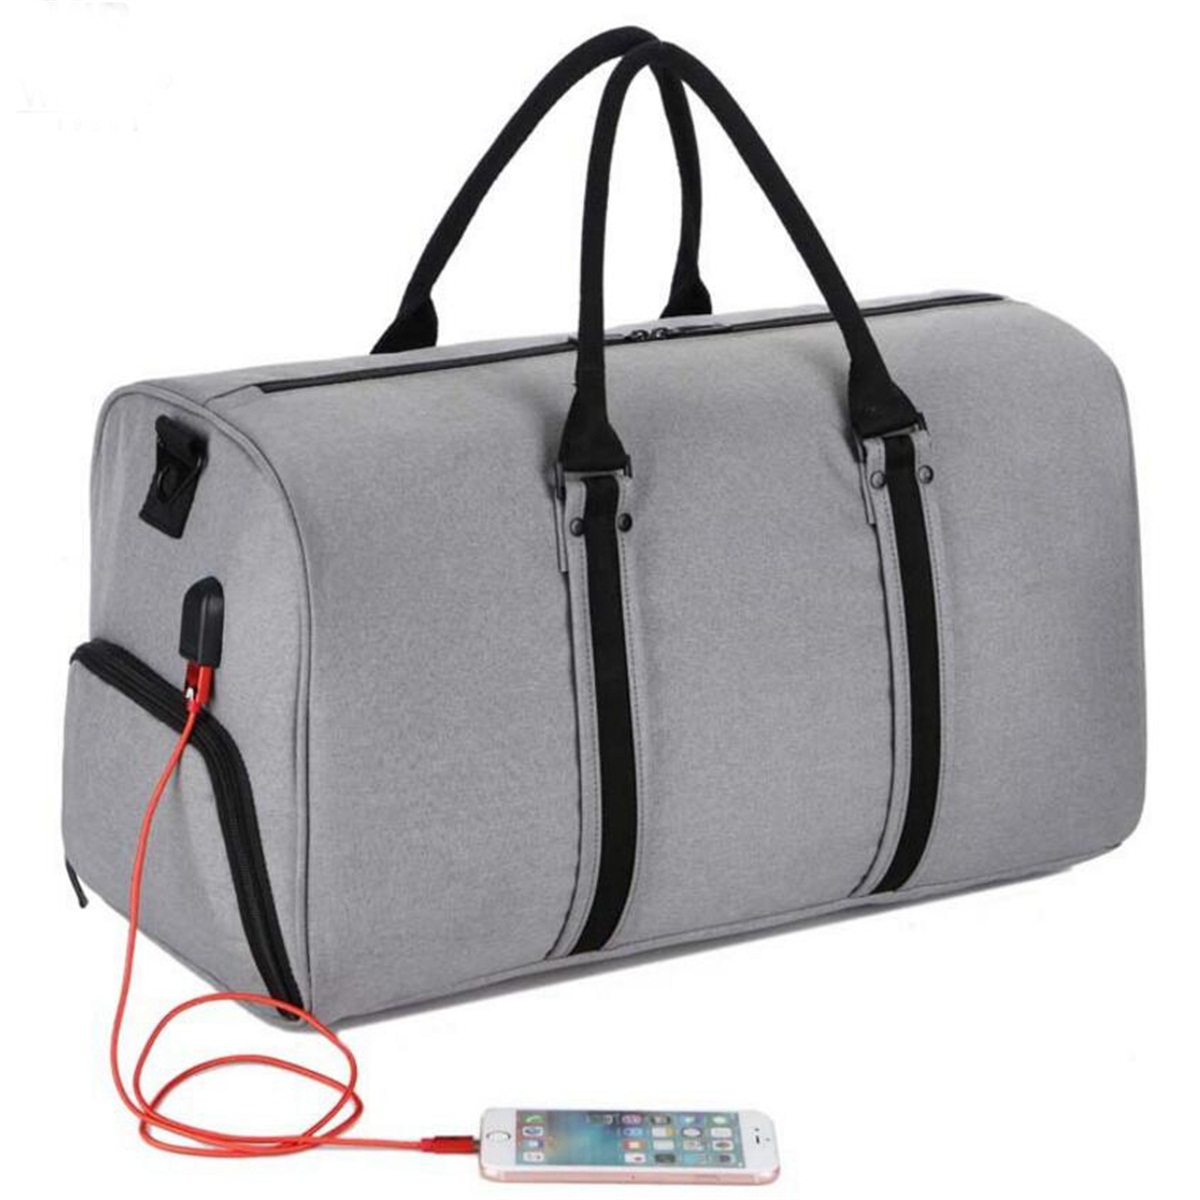 Recycle Material USB sports bag with shoe compartment